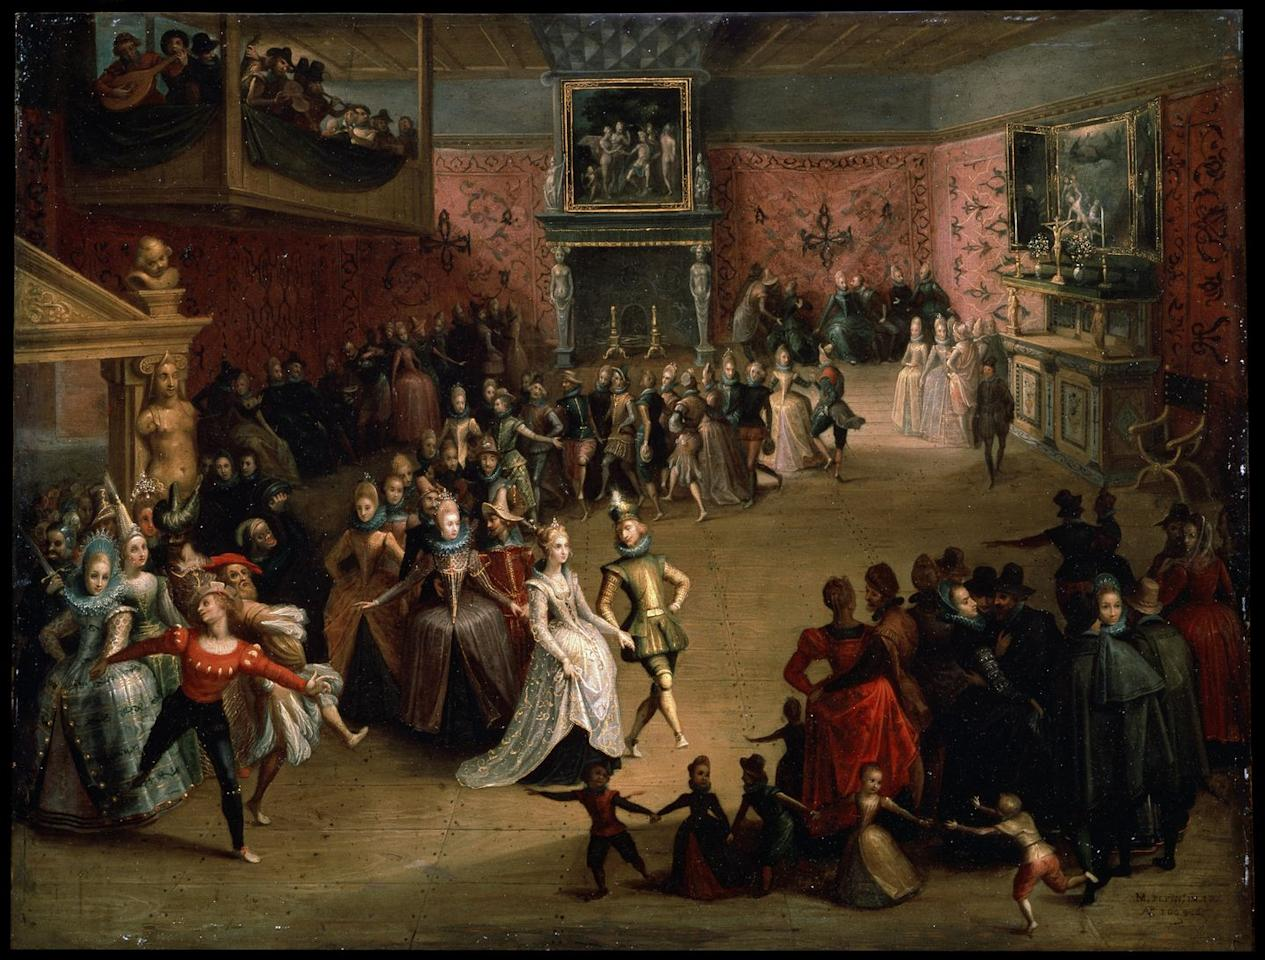 """<p>At a 17th century wedding ball, the bride (center) wears an ornately decorated blue dress. At this time, it was popular for a bride <a href=""""https://daily.jstor.org/a-natural-history-of-the-wedding-dress/"""" target=""""_blank"""">to wear her best dress</a>, no matter the color.</p>"""